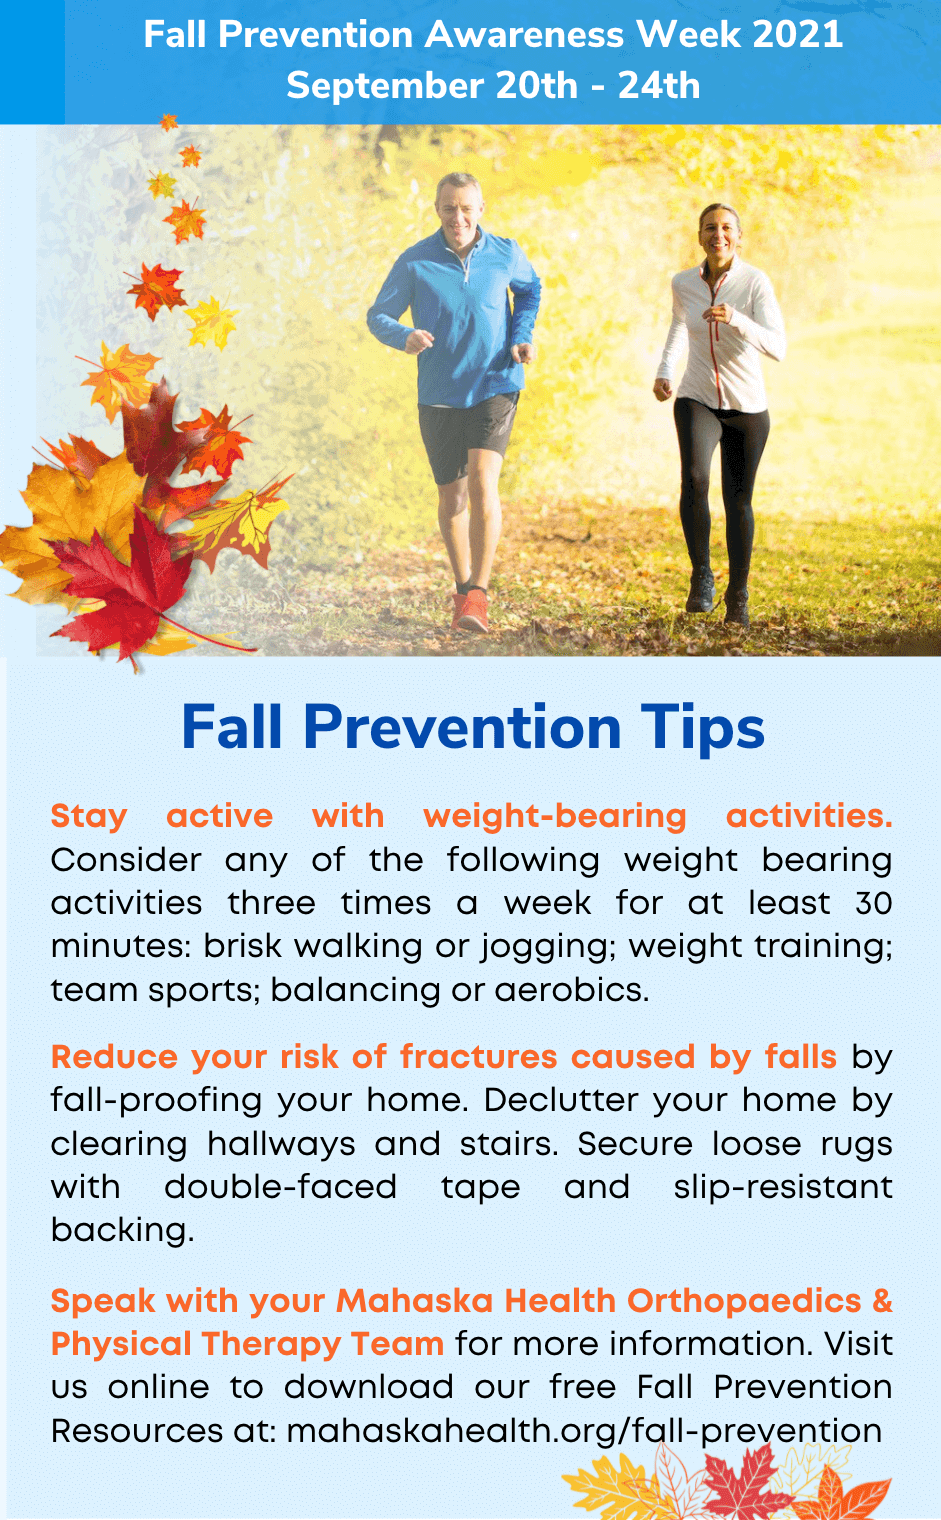 Fall Prevention Tips from your Orthopaedics & Physical Therapy Team 3